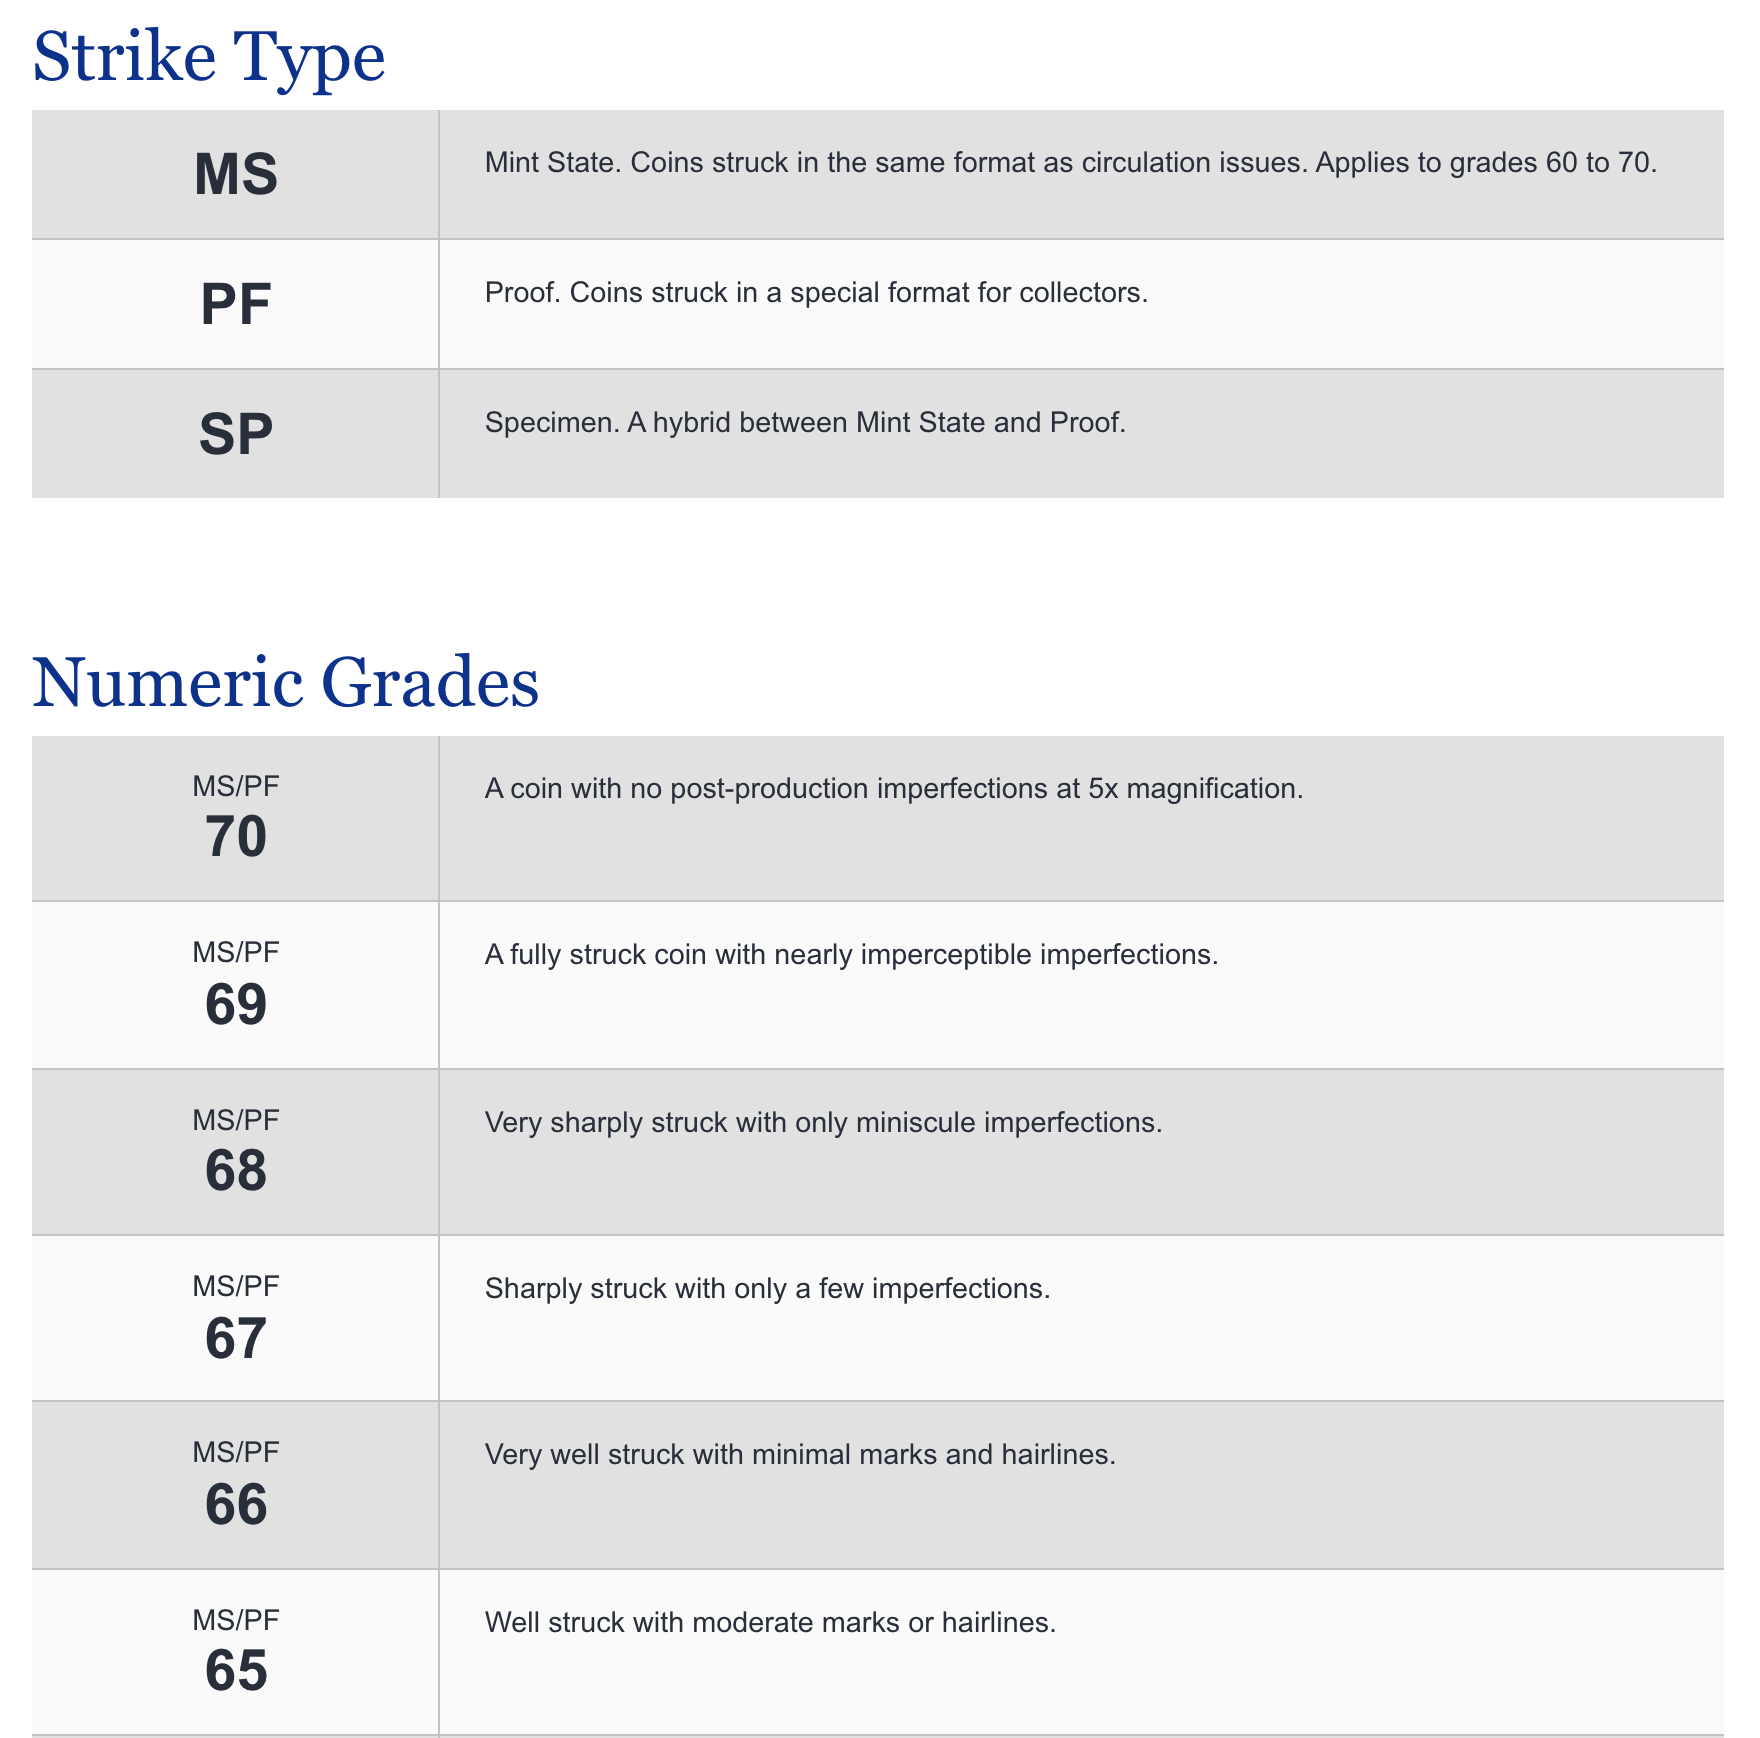 strike type and numerical grade chart